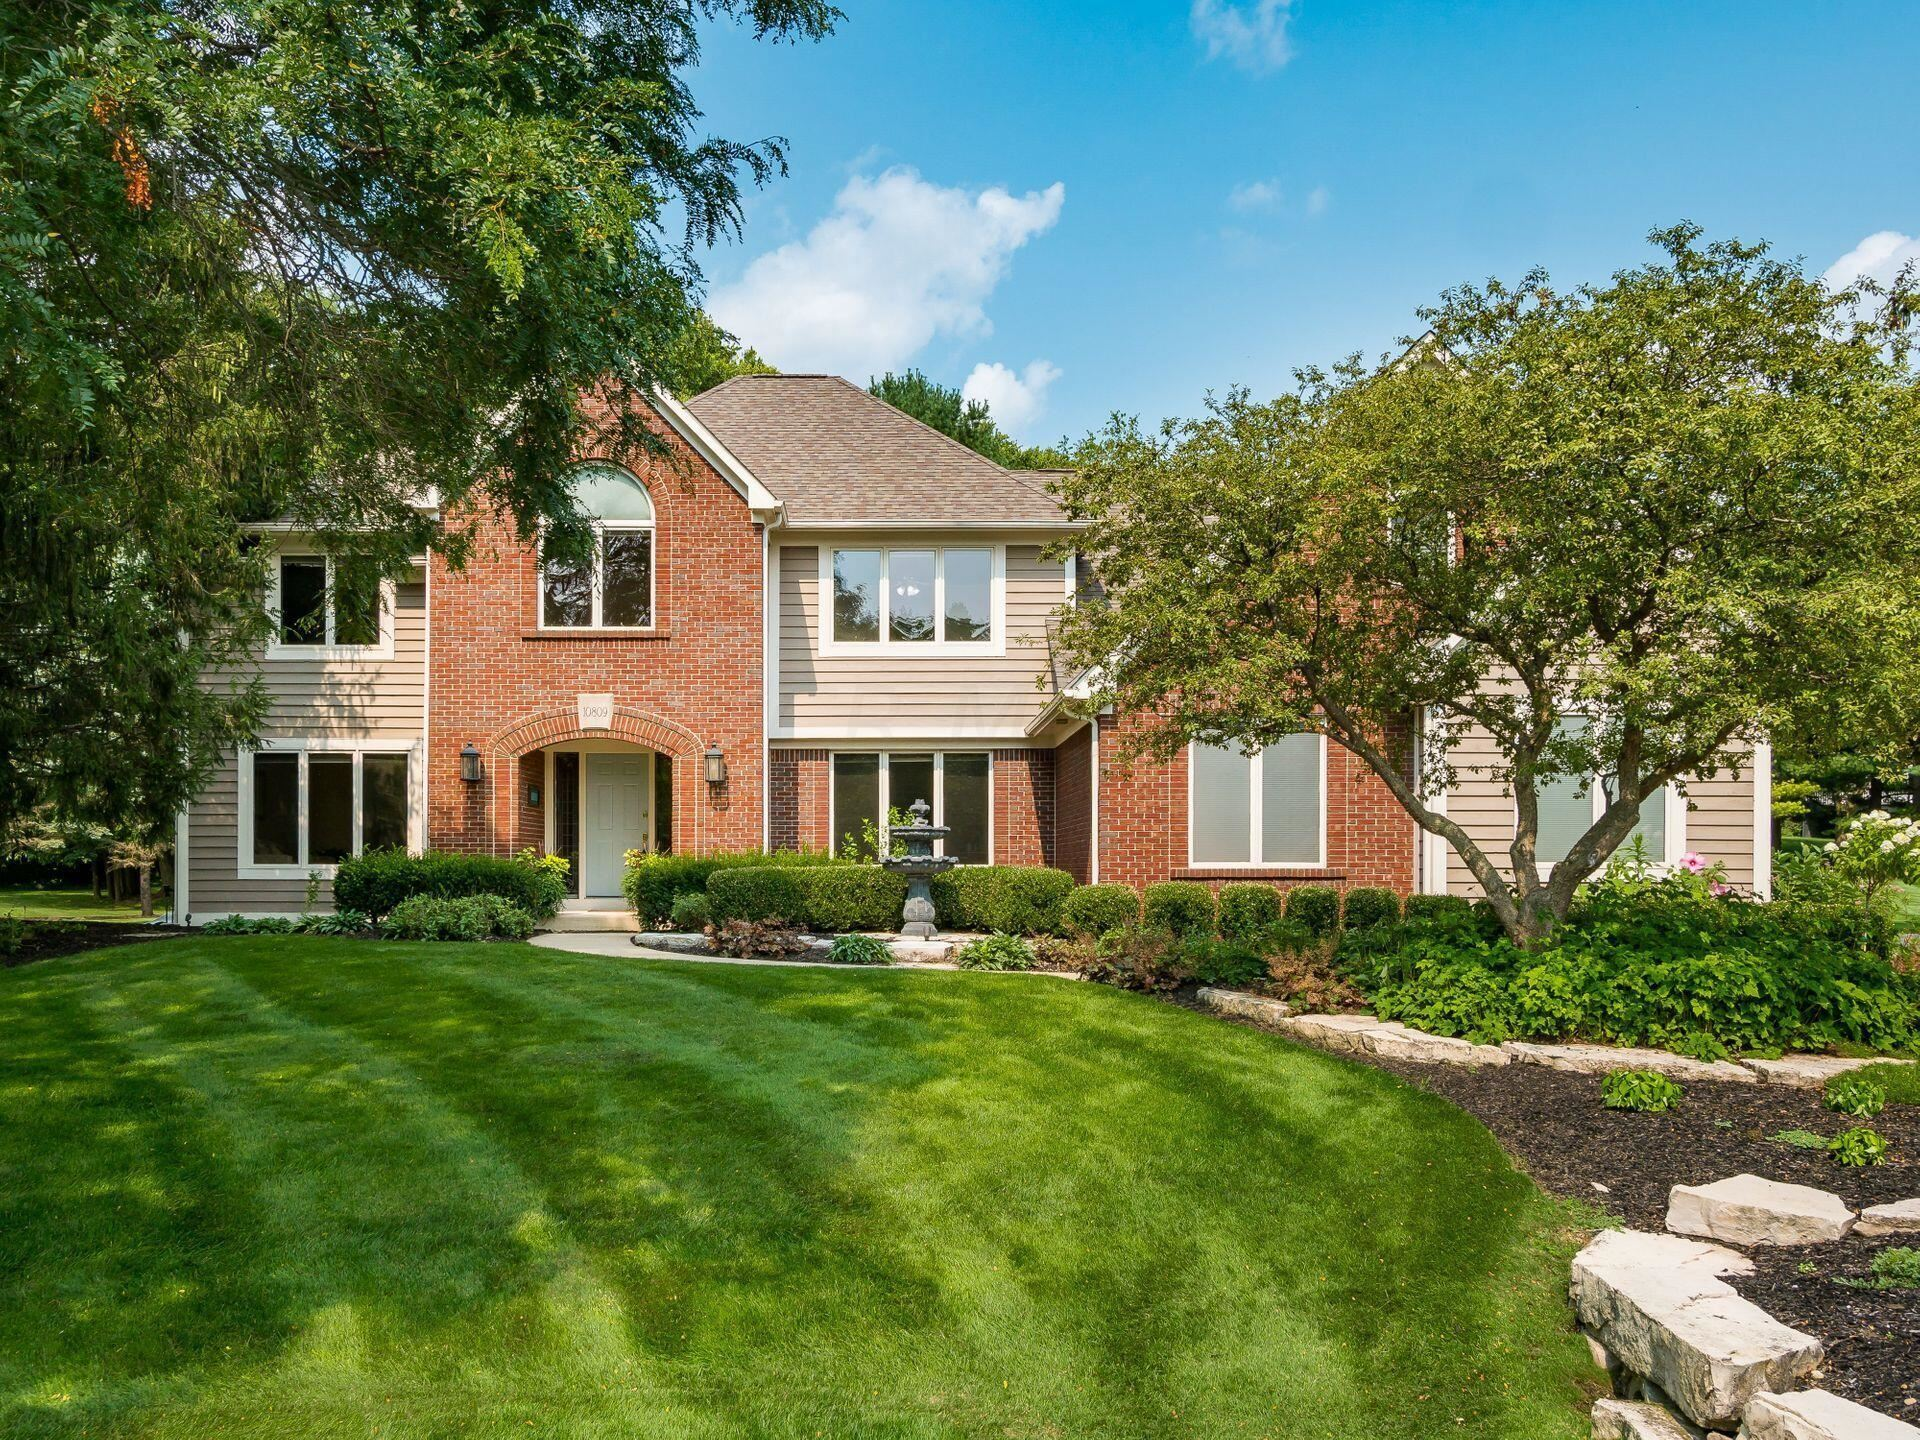 Photo of 10809 Buckingham Place, Powell, OH 43065 (MLS # 221028957)